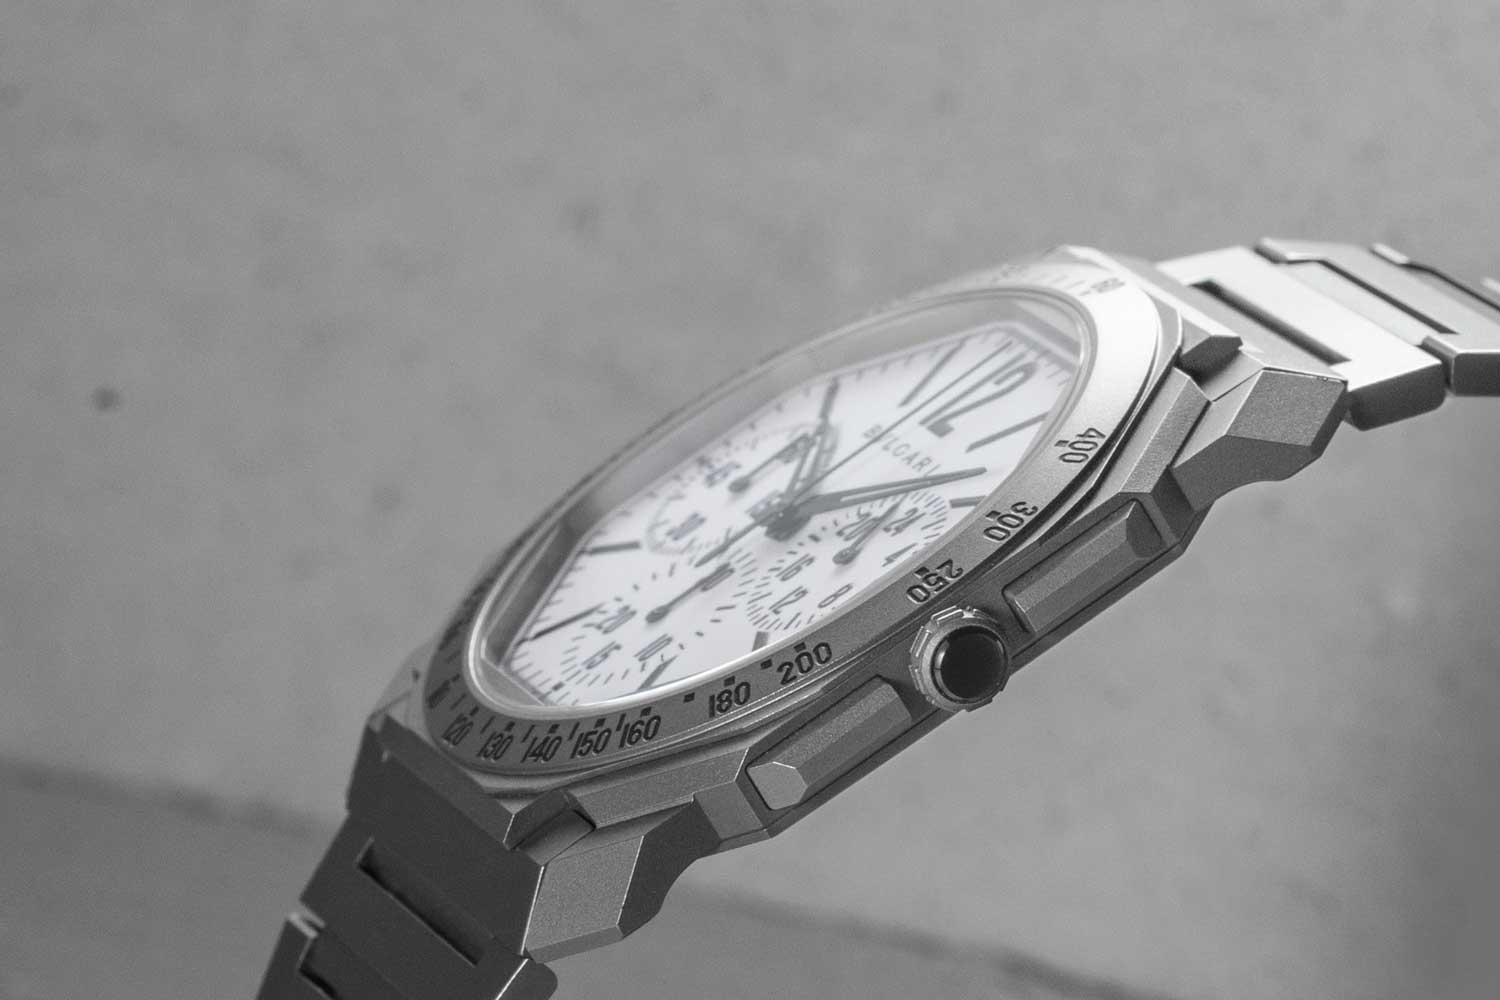 The Bulgari Octo Finissimo Chronograph GMT for Revolution & The Rake case measures a slim 6.90 mm in thickness (©Revolution)